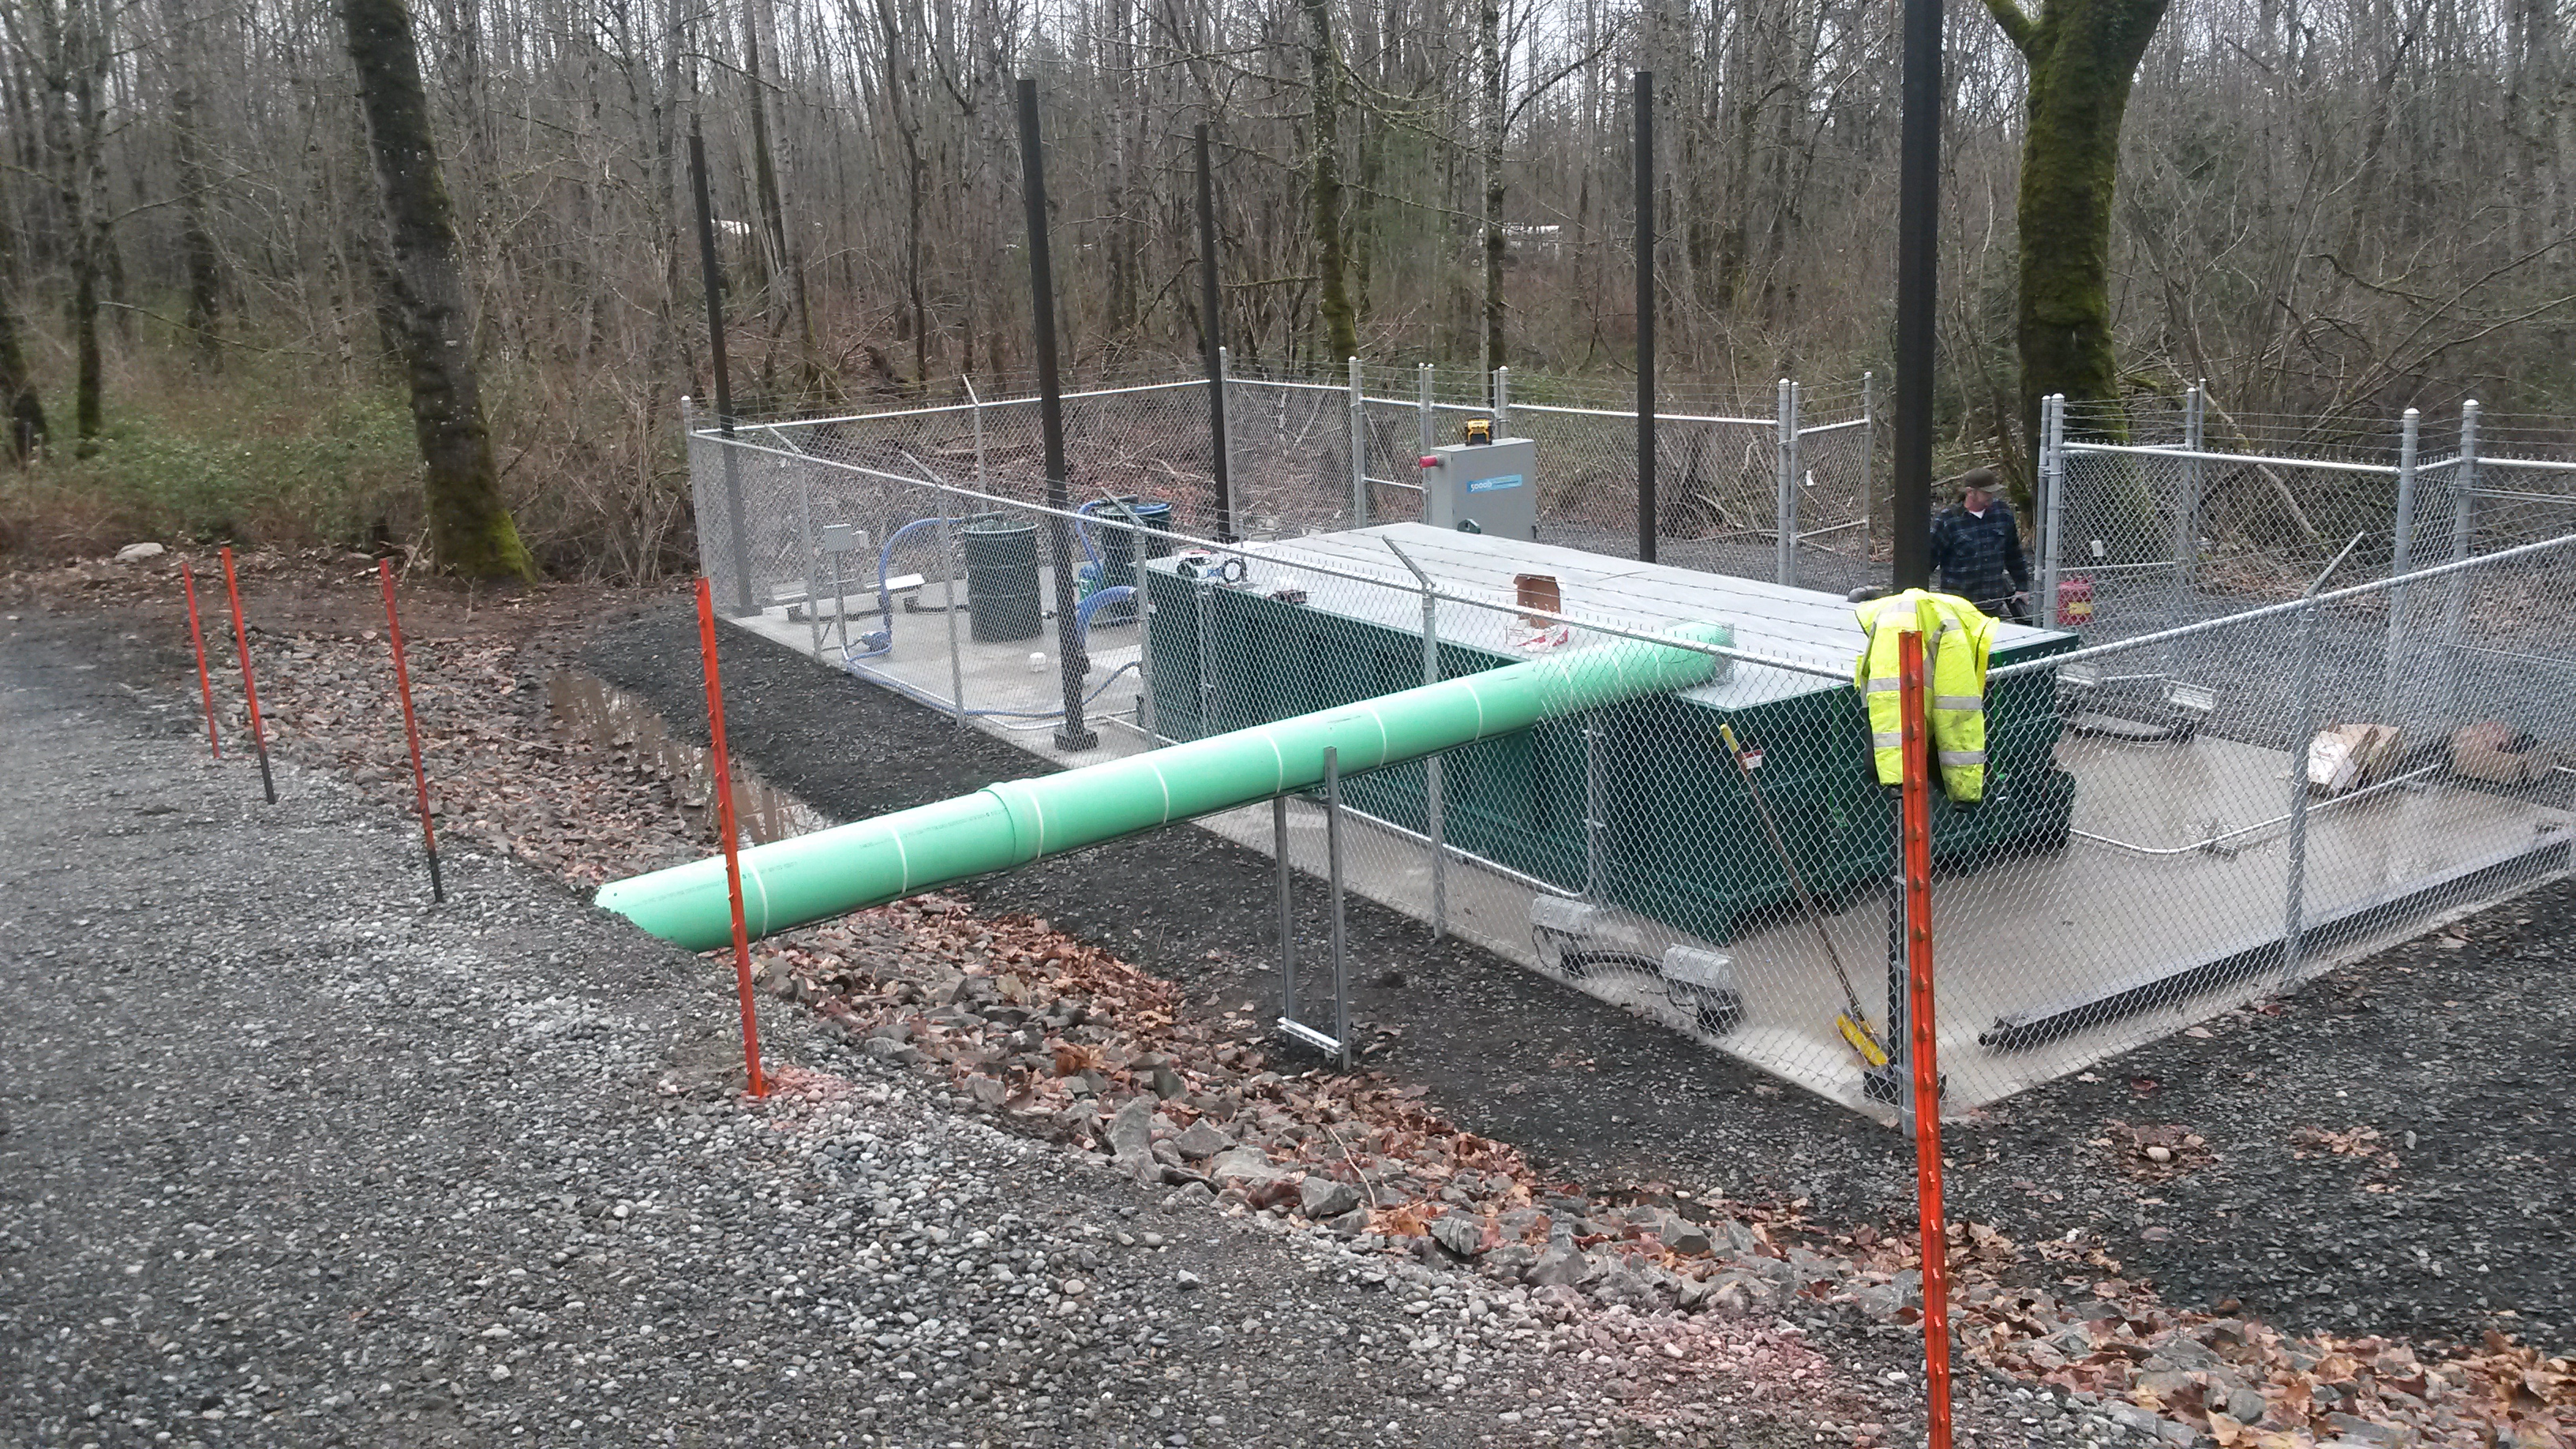 Machinery inside a fence, with a teal inflow pipe is seen on a wooded hillside.